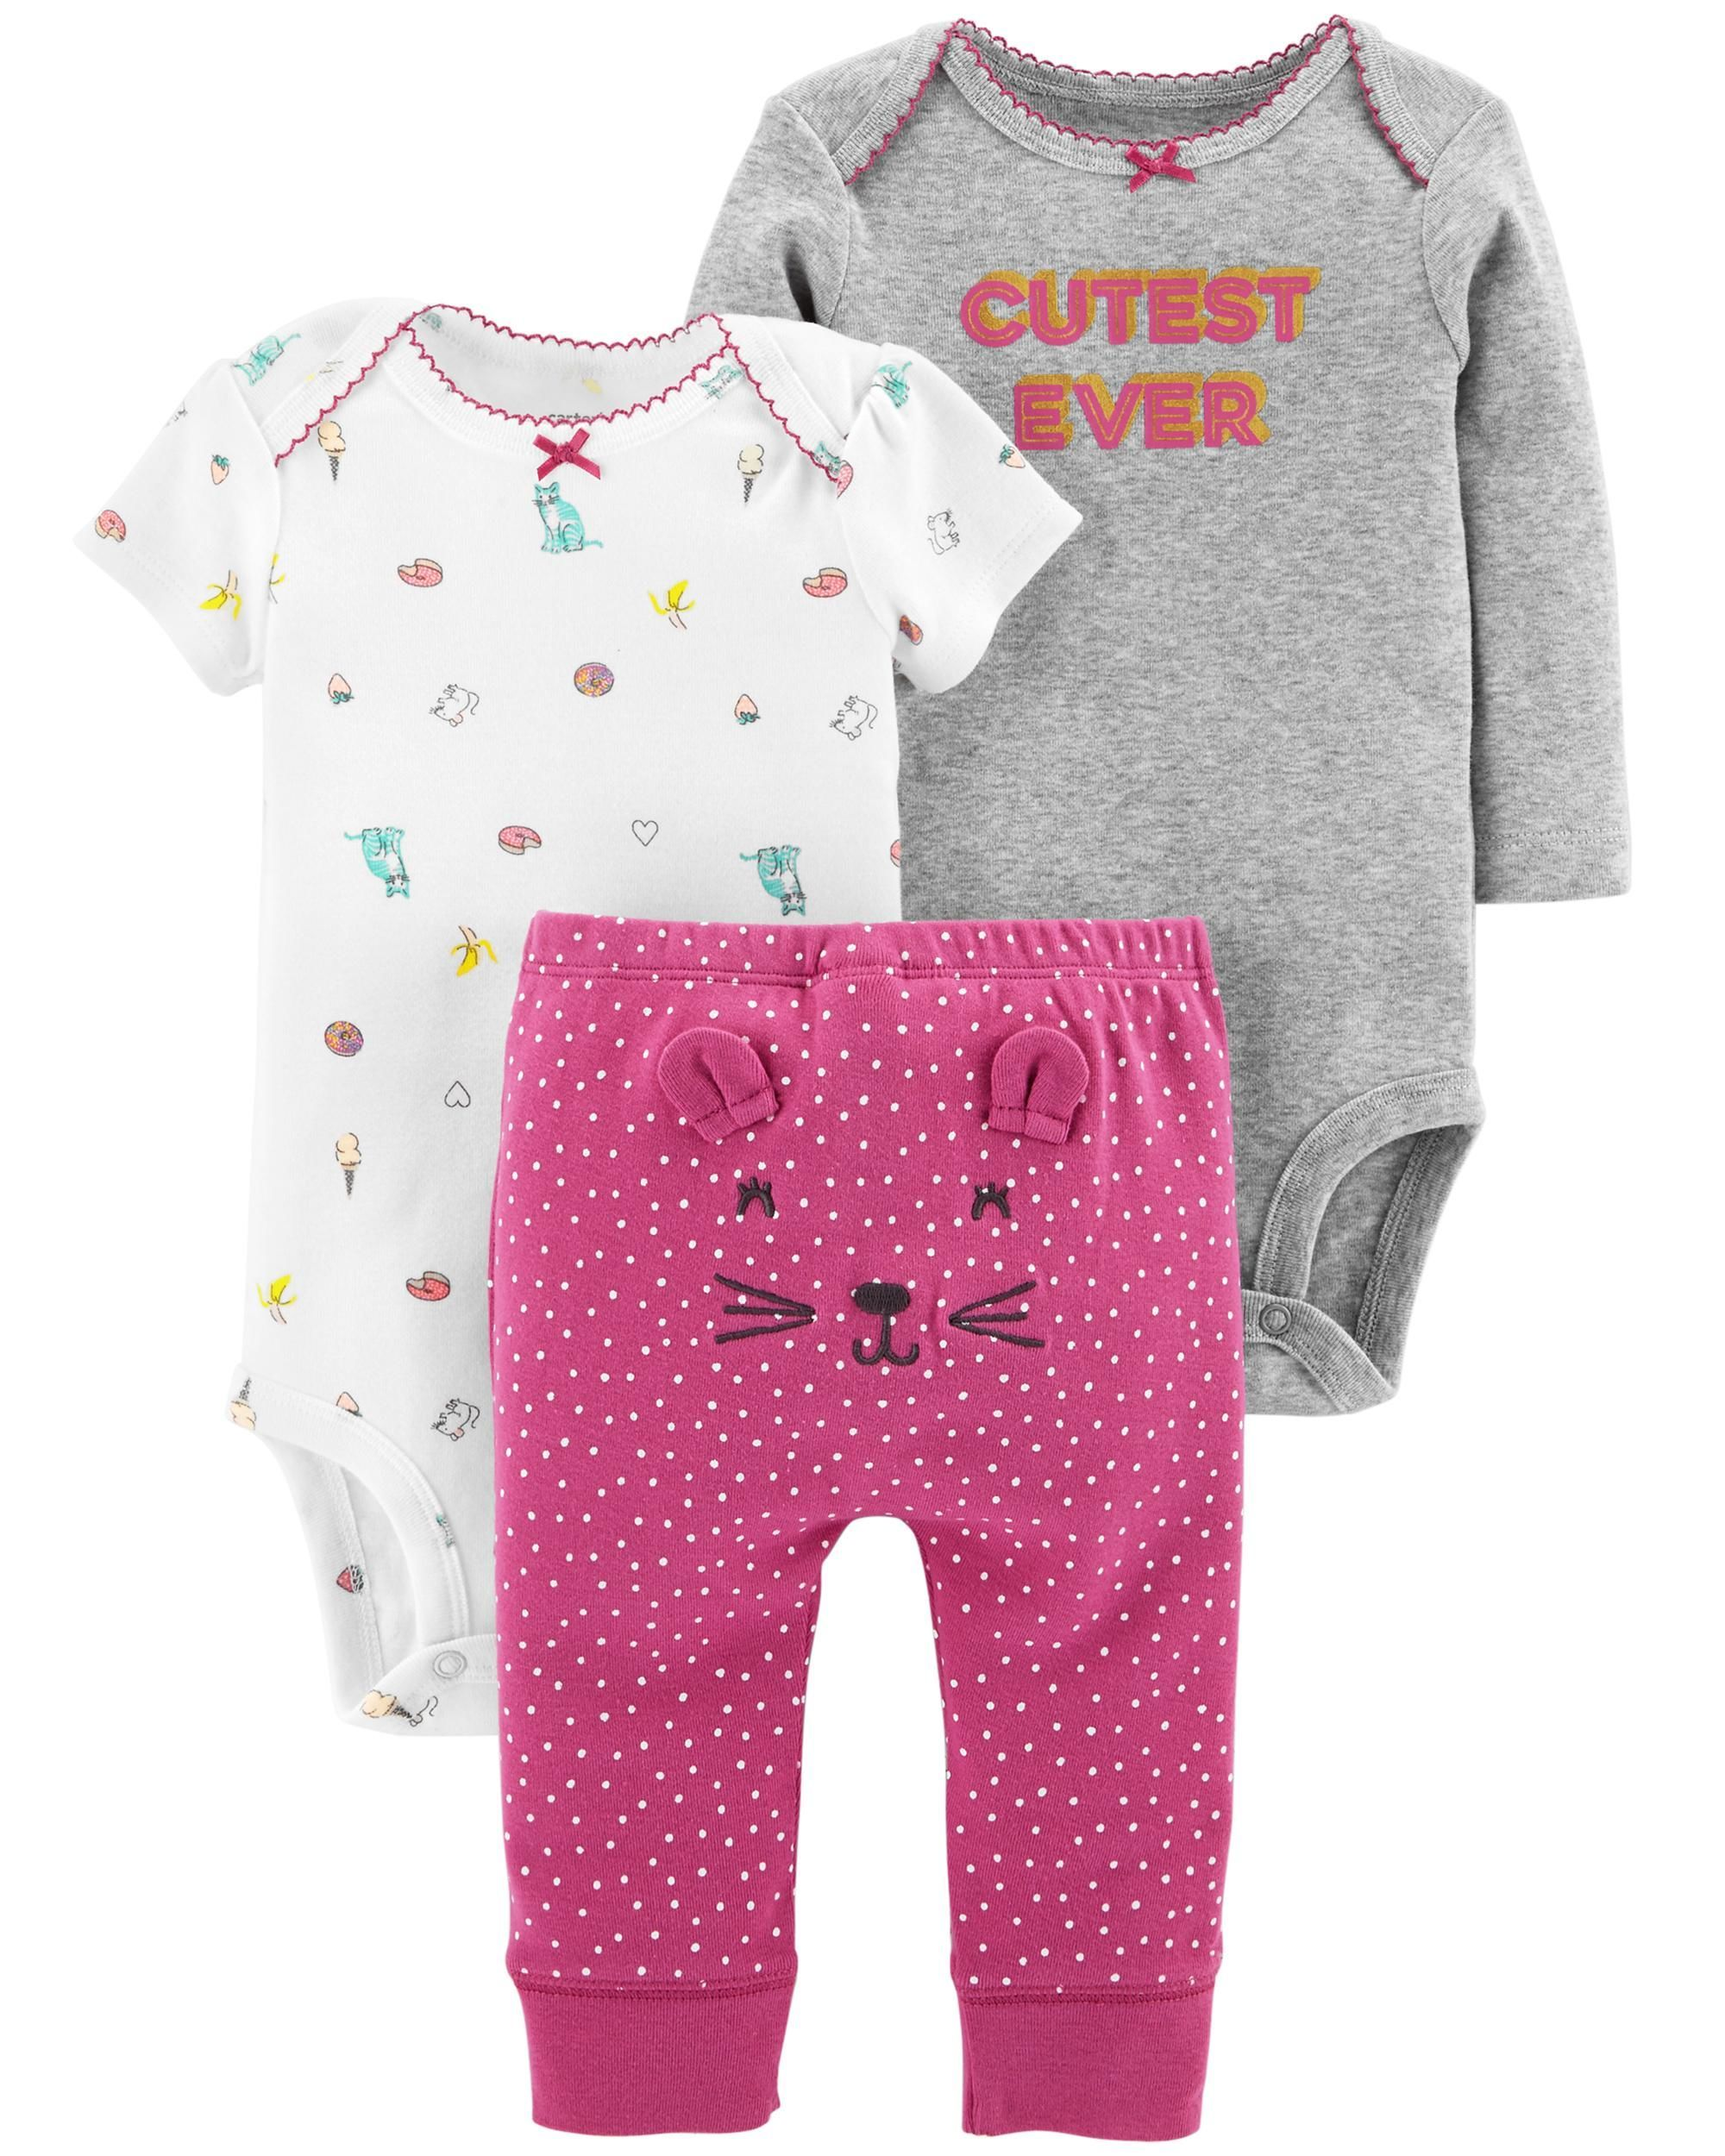 Navy//Multi Carters Baby Girls 3-Piece Layette Set 3 Months